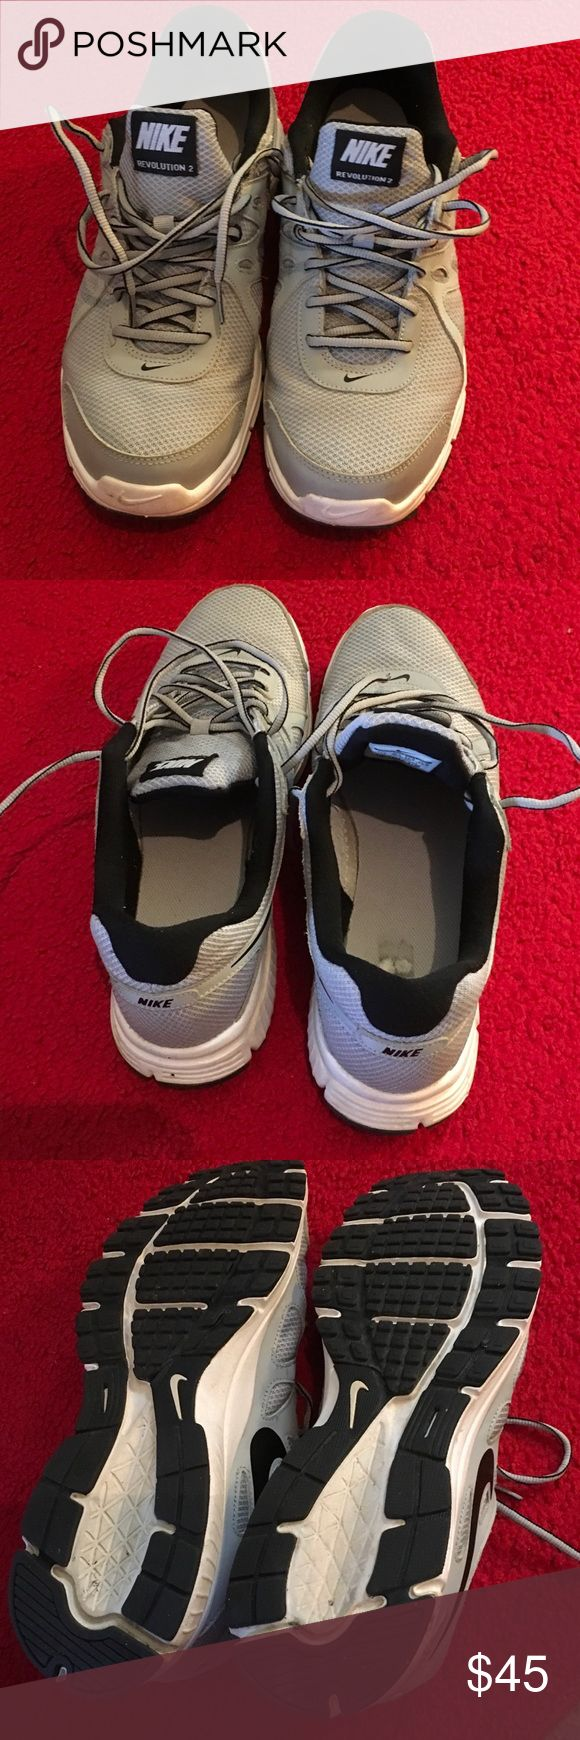 Nike revolution 2 Good looking athletic shoes size 11.5 for men,shoes are in good condition Nike Shoes Sneakers